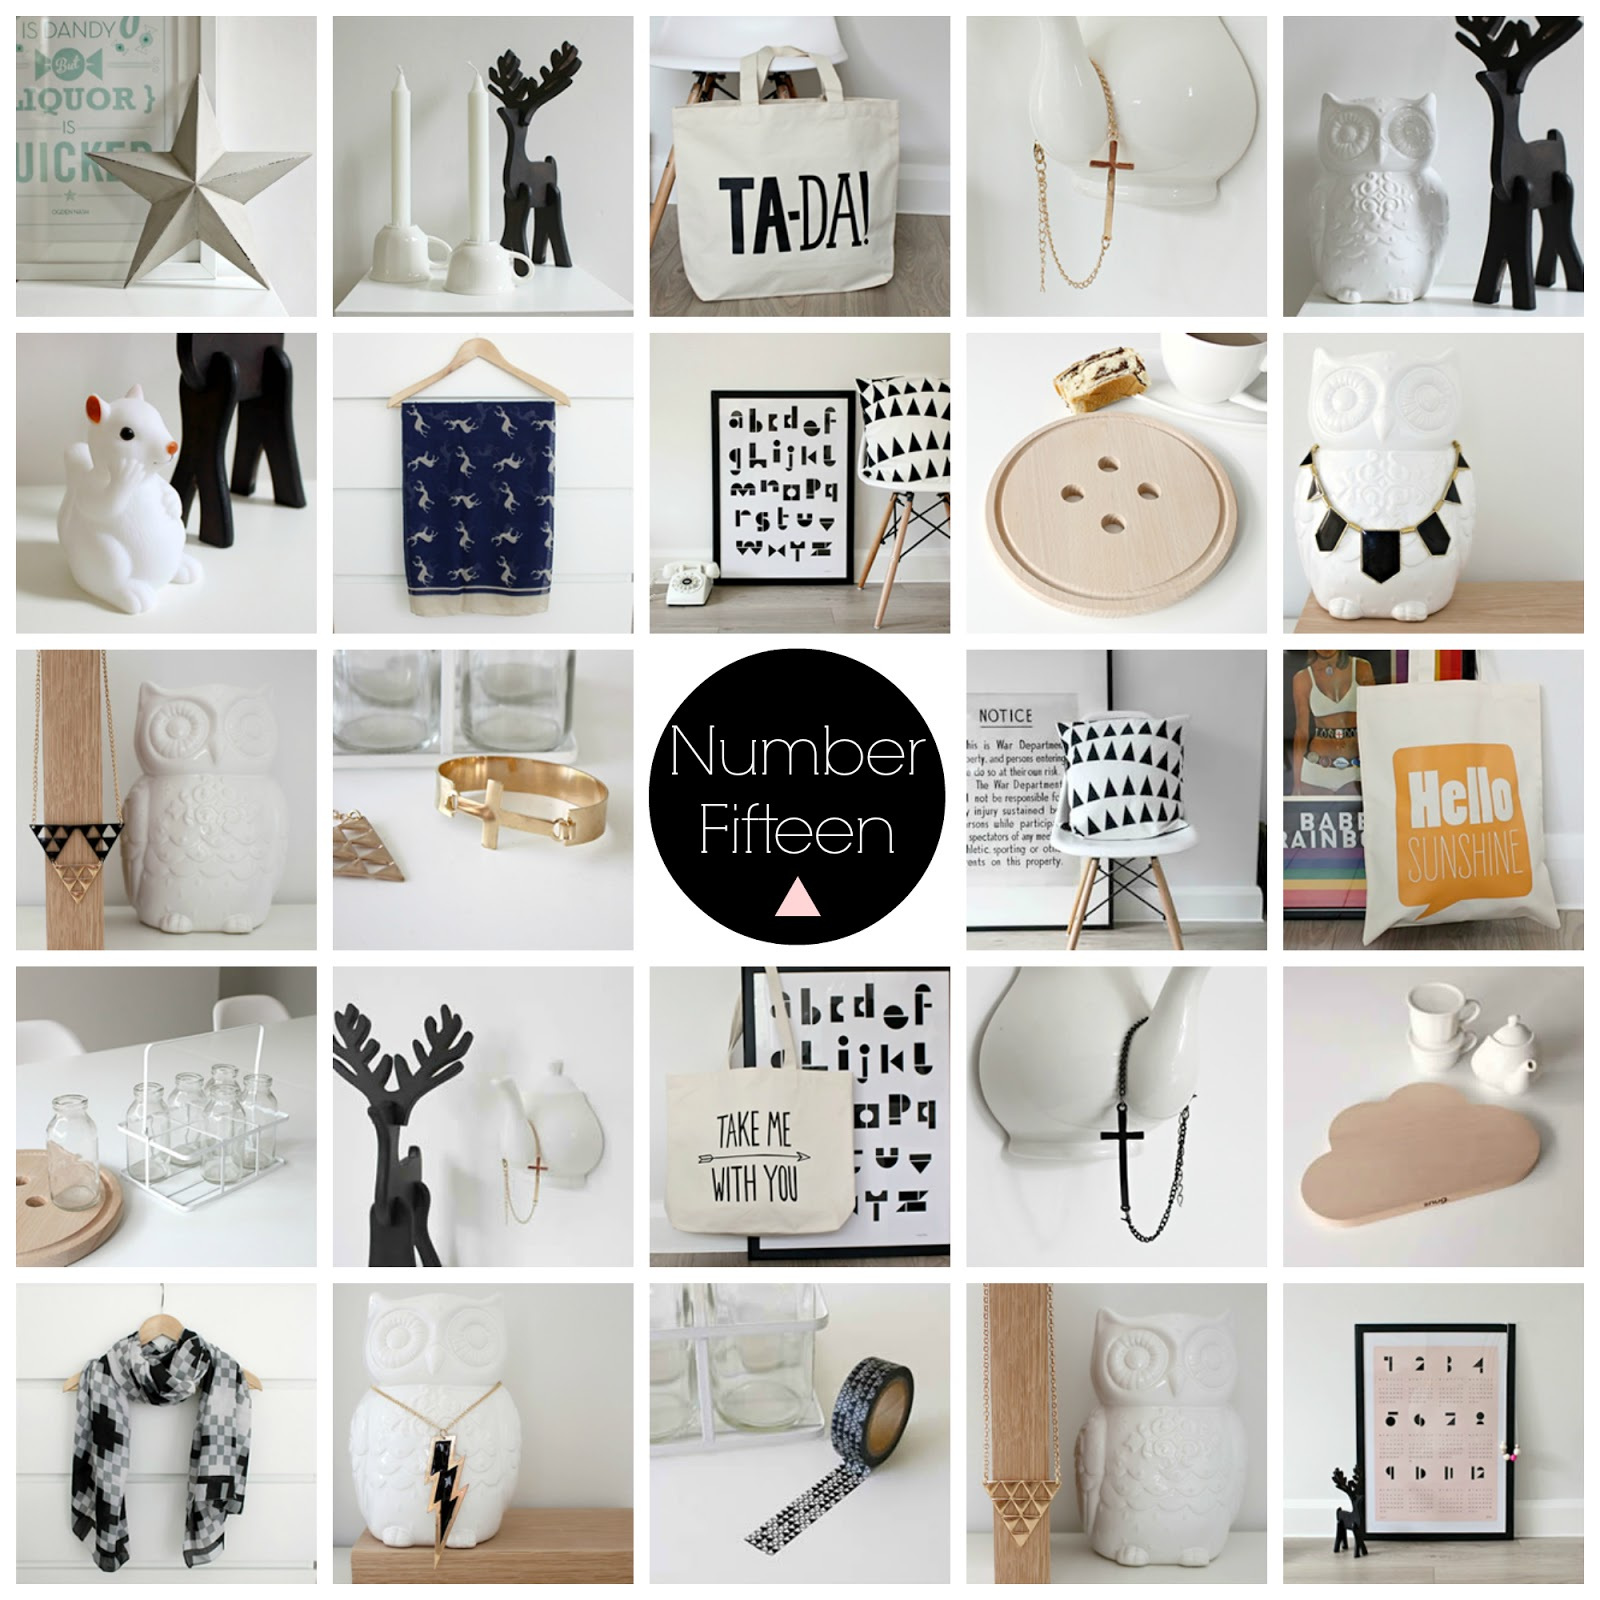 Number fifteen lots of cute quirky homewares for Cute homeware accessories